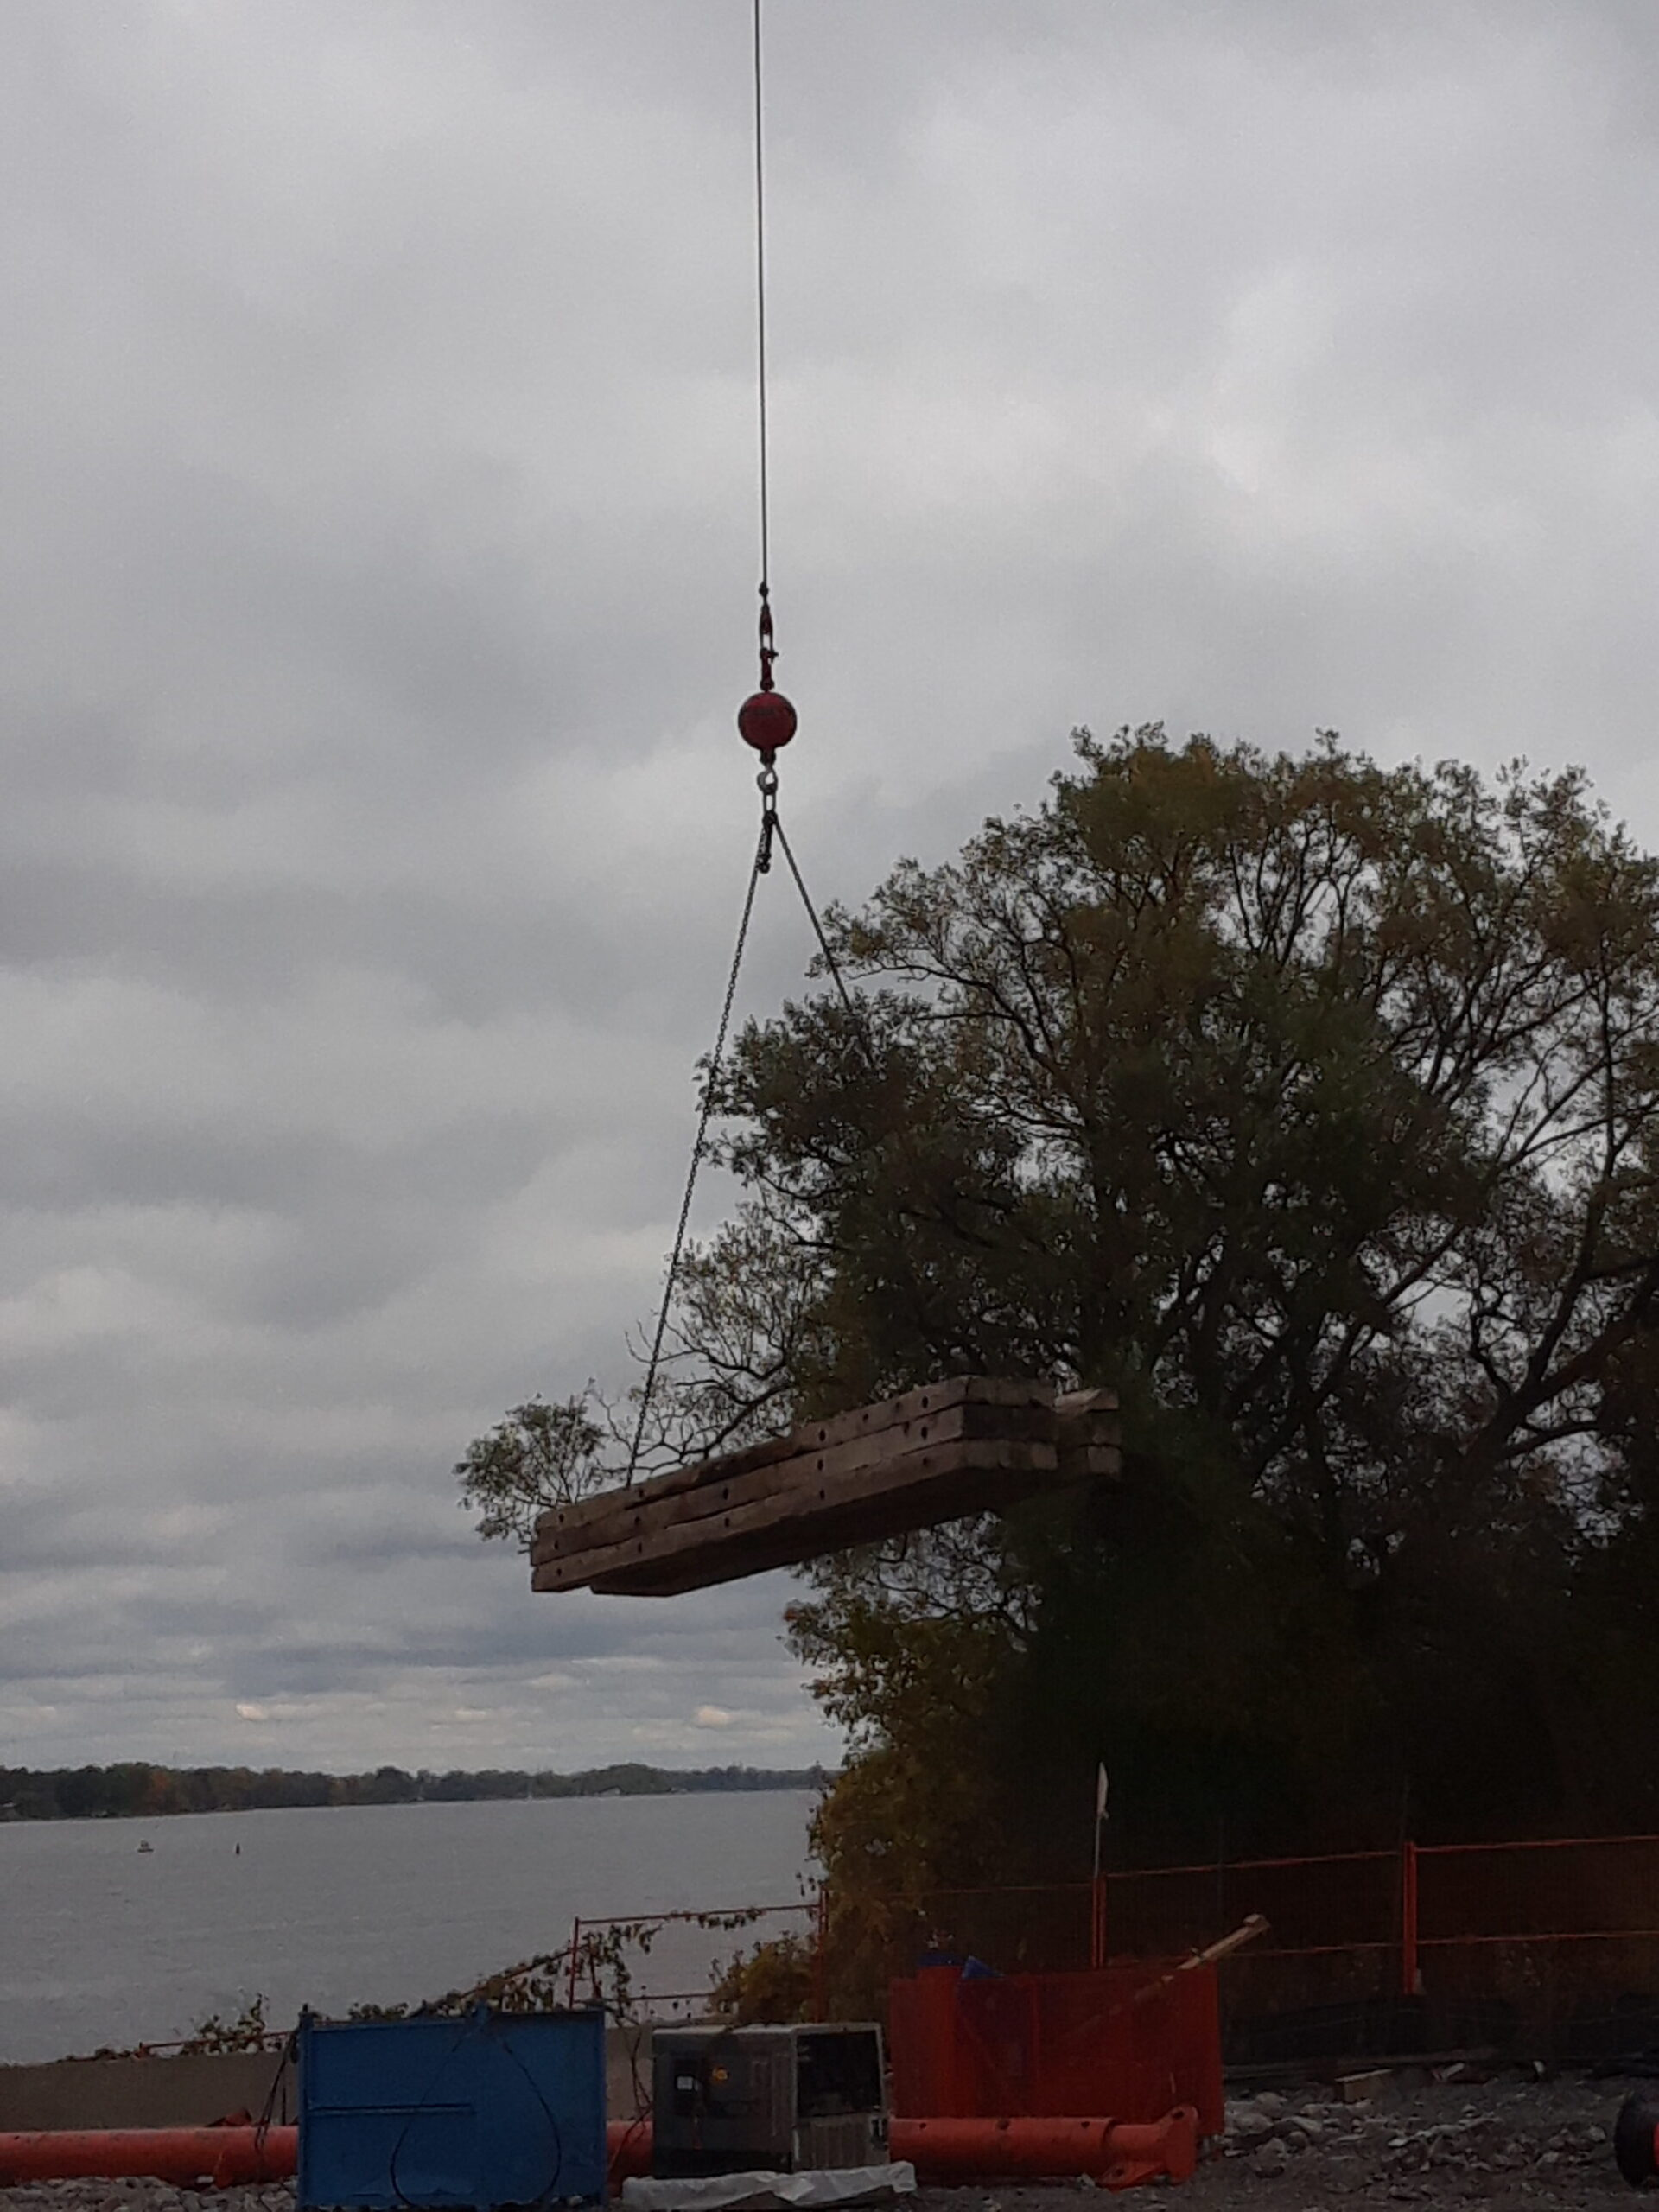 Removing the mats from the barge